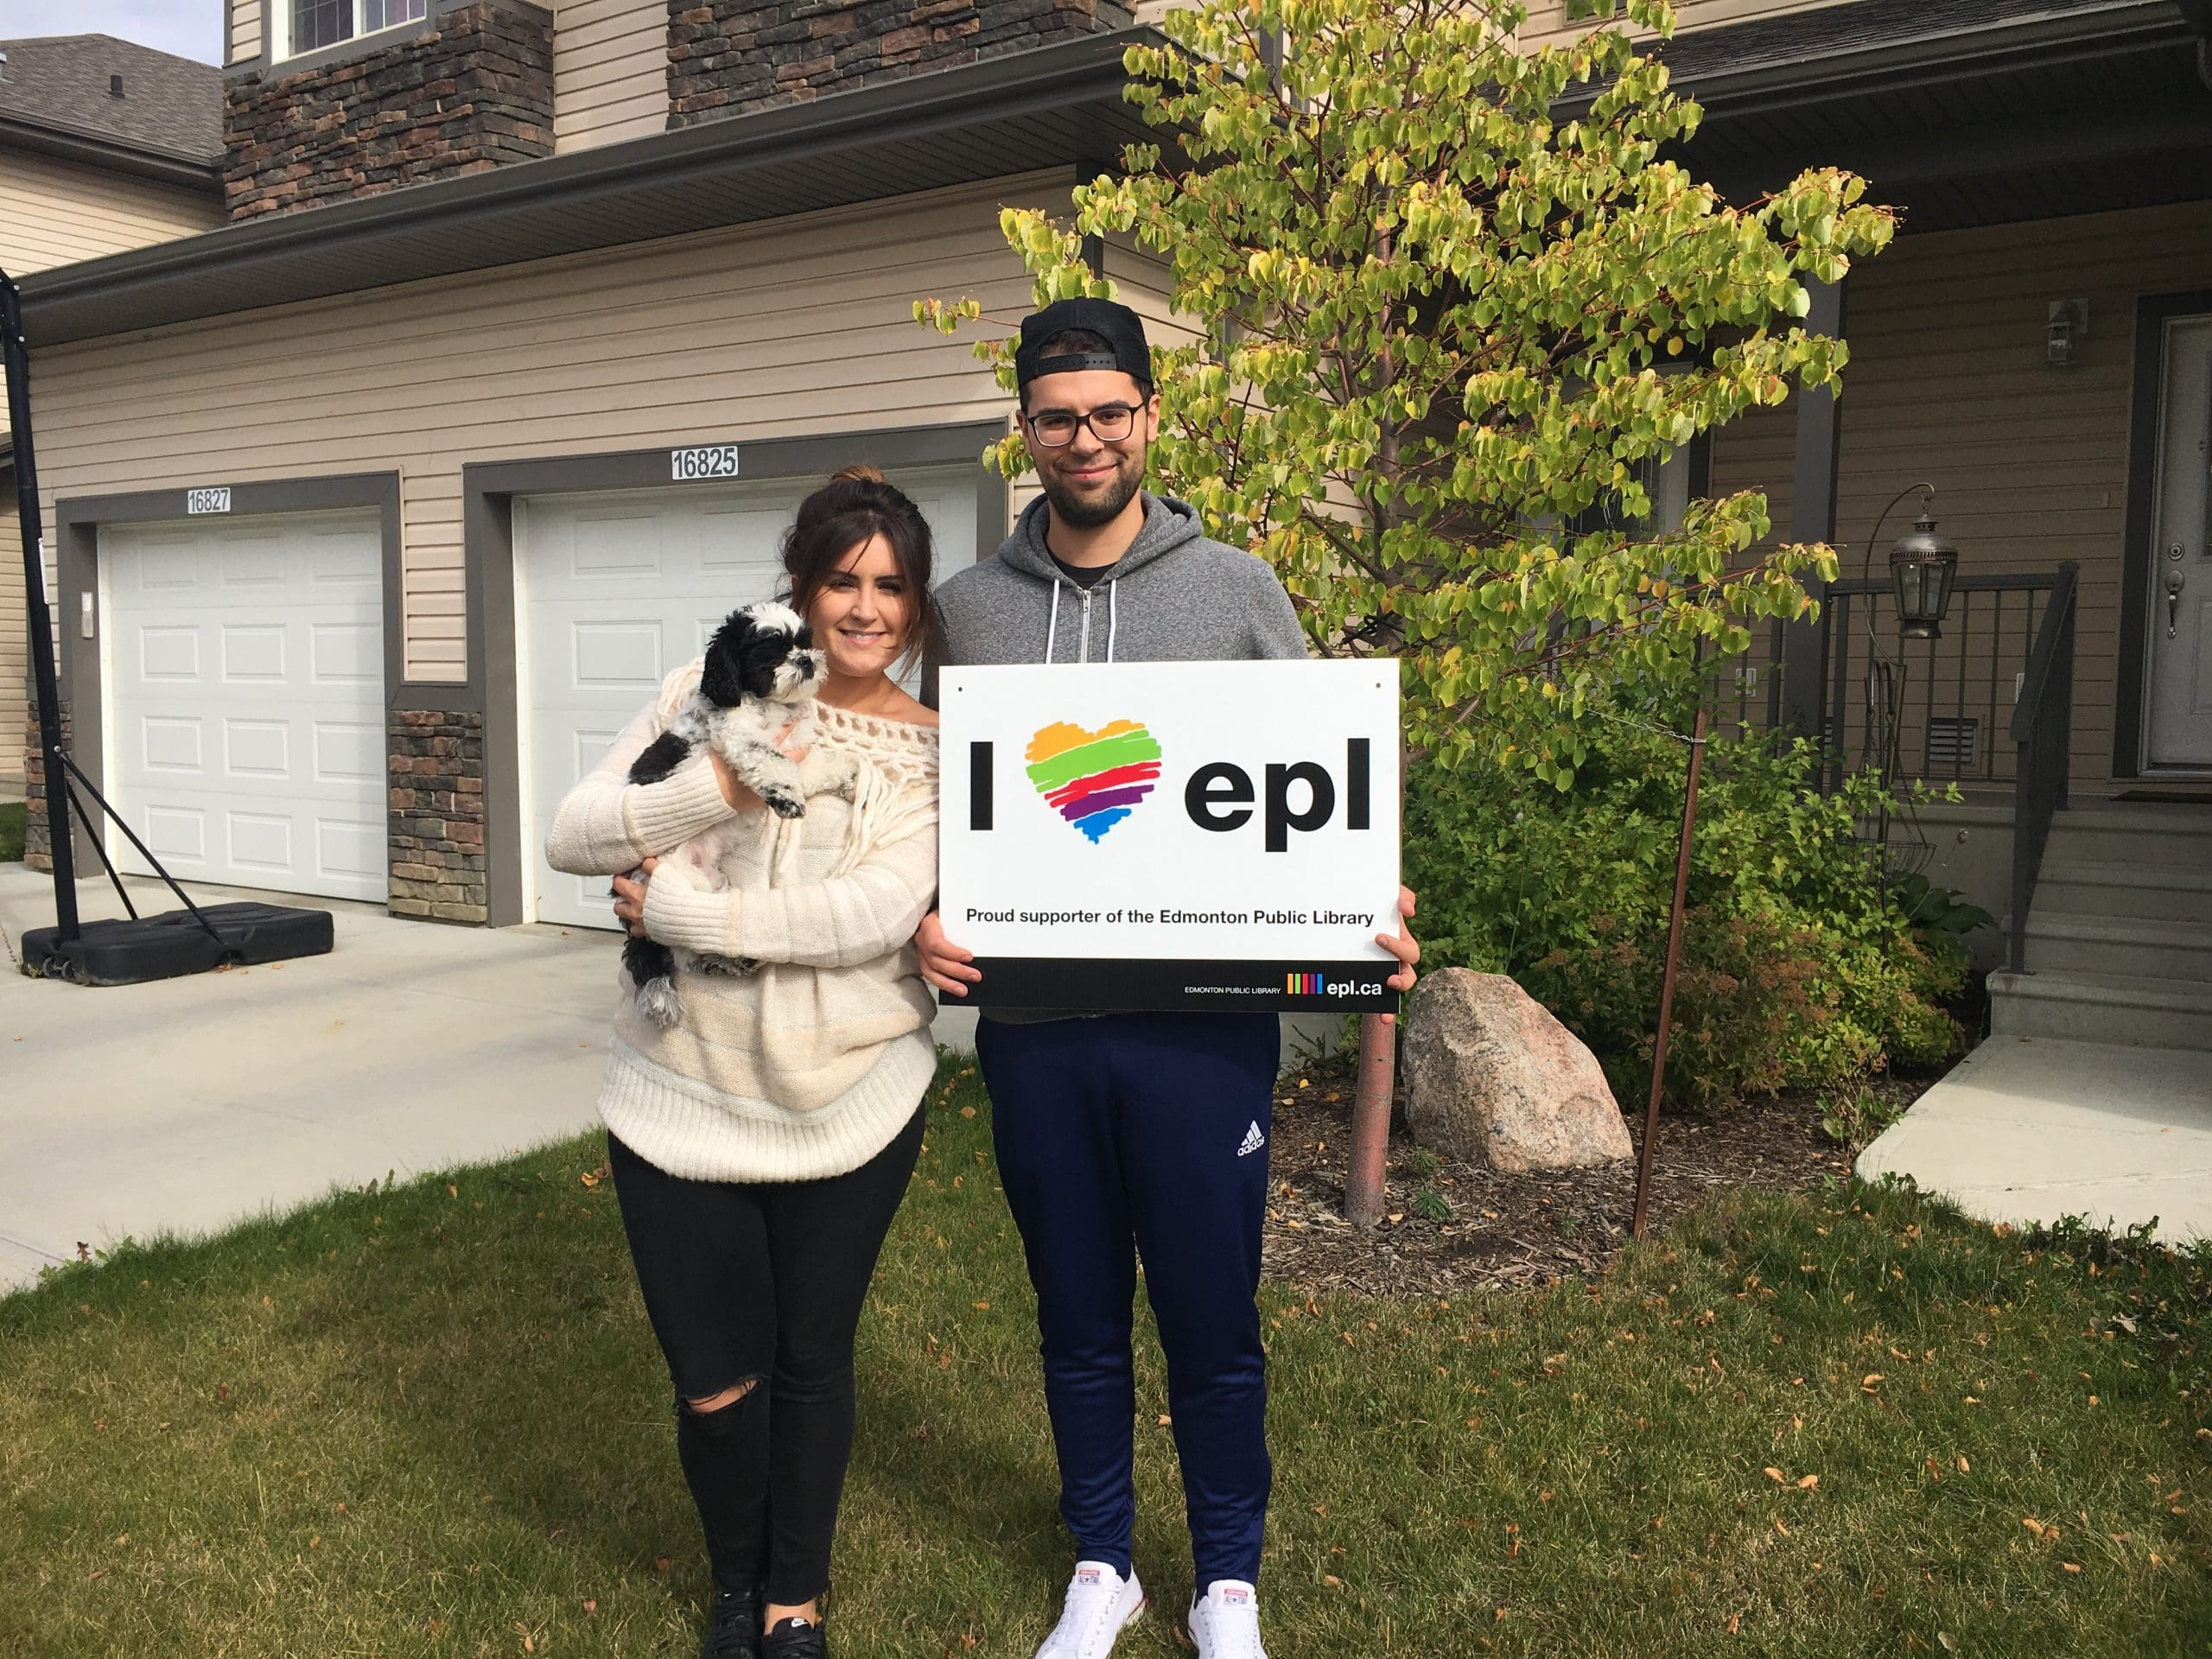 Briana, Mitch, and Zoey proudly holding an EPL lawn sign in front of their house